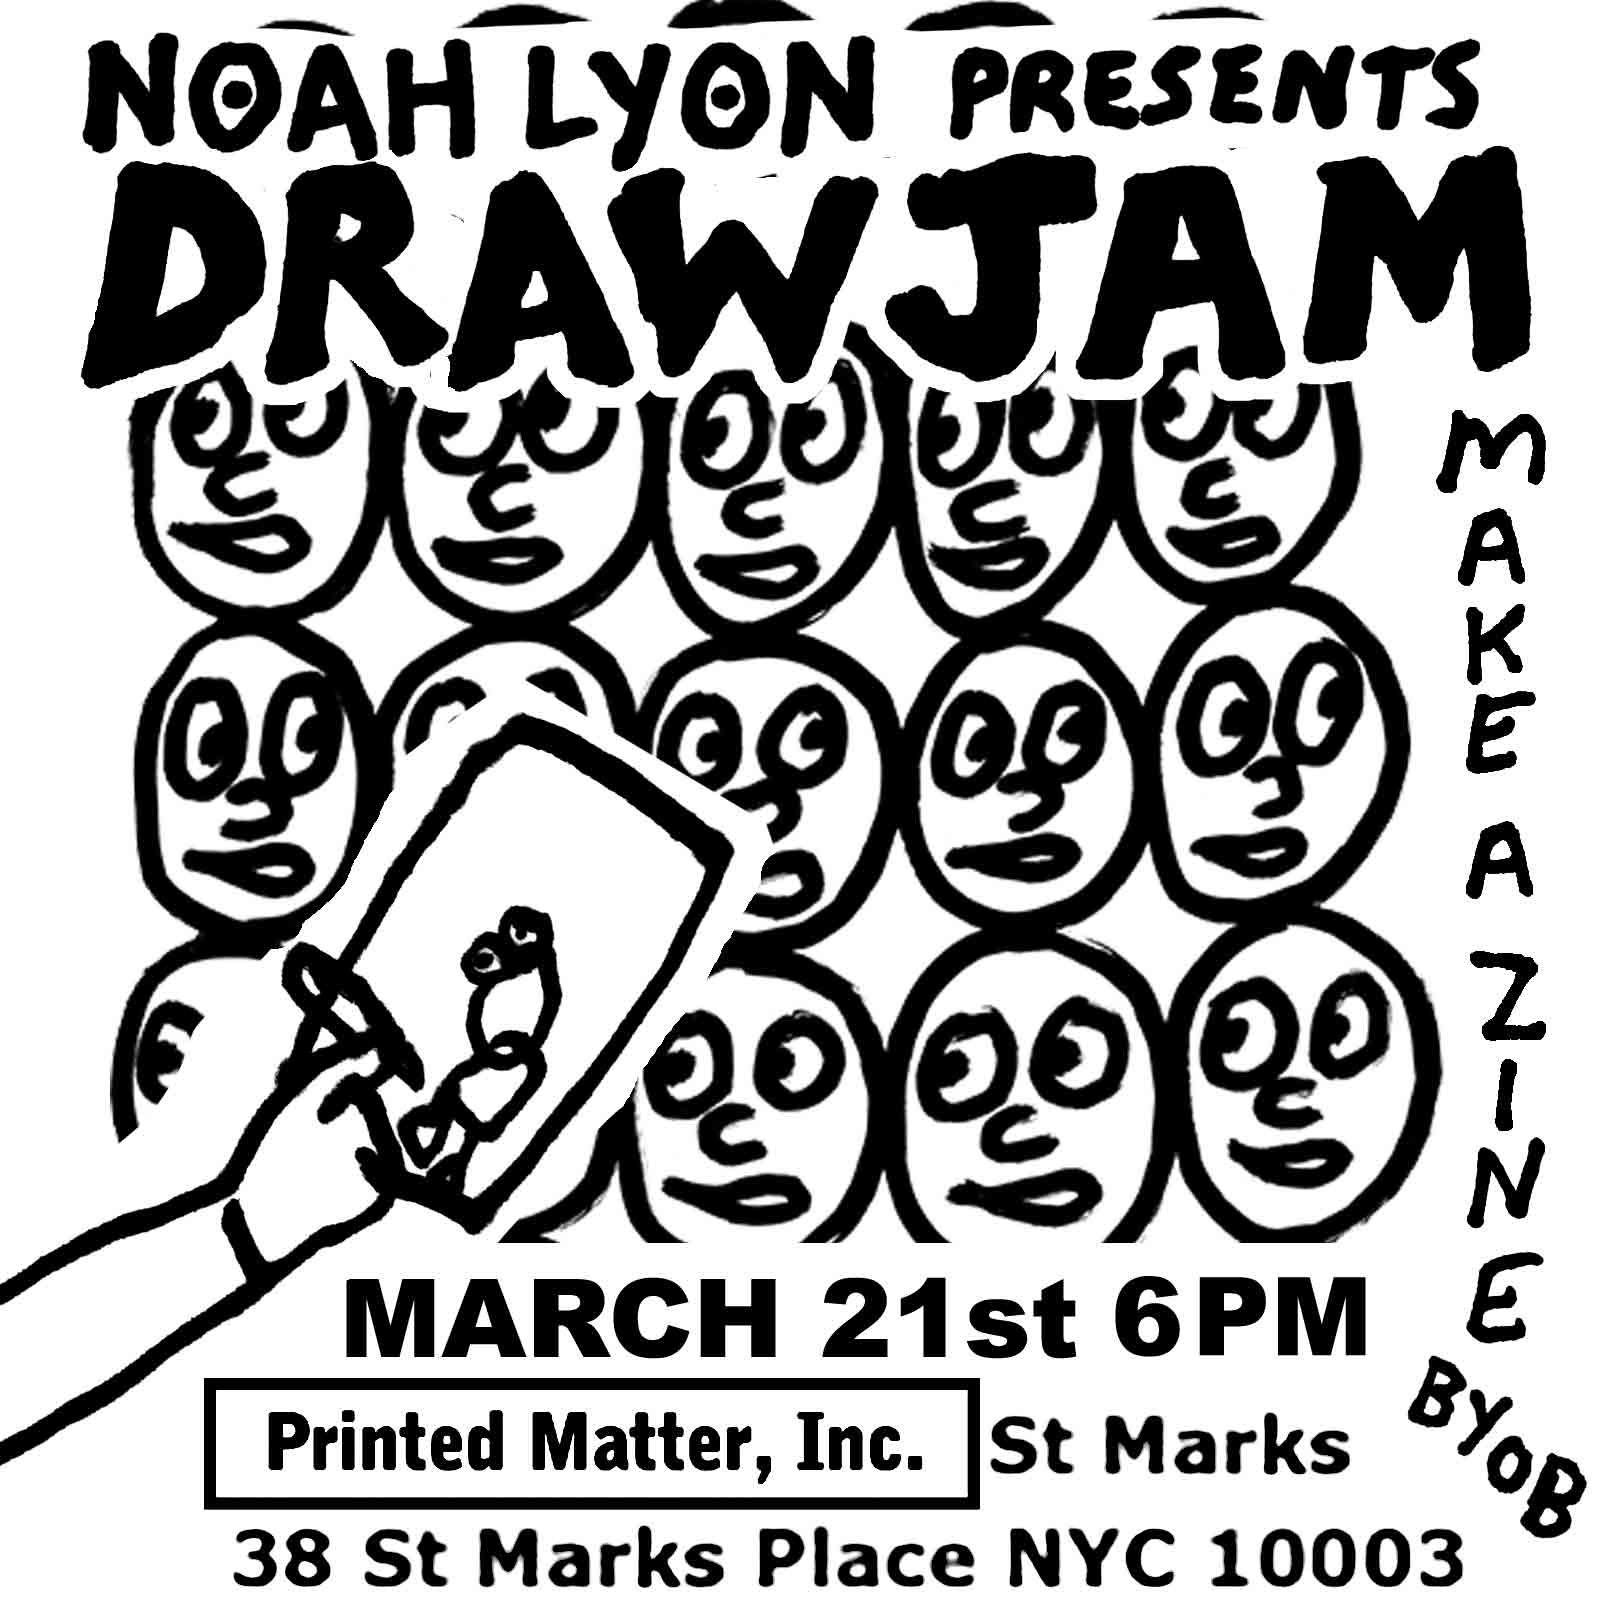 Noah Lyon DRAW JAM at PRINTED MATTER INC. ST. MARKS